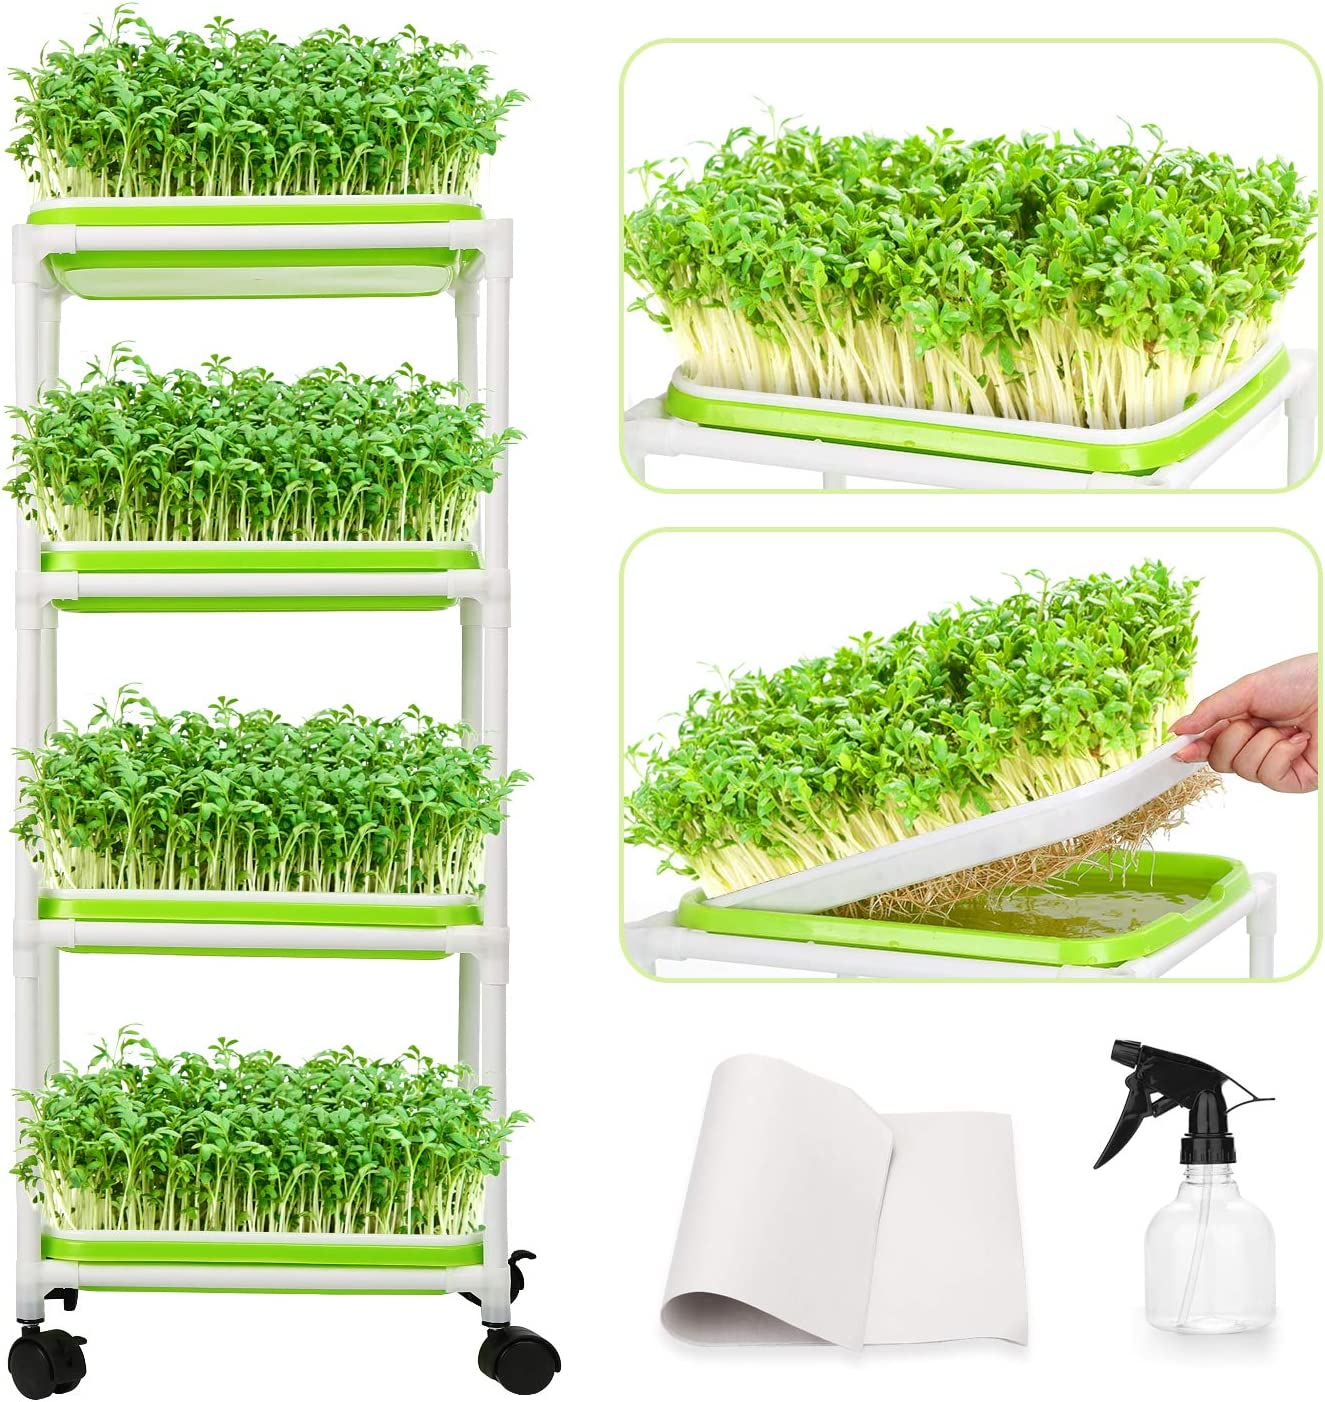 Seed Sprouter Trays with Extra Plastic Shelf Soil-Free Wheatgrass Seeds Grower & Storage Trays Planting for Garden Home Office